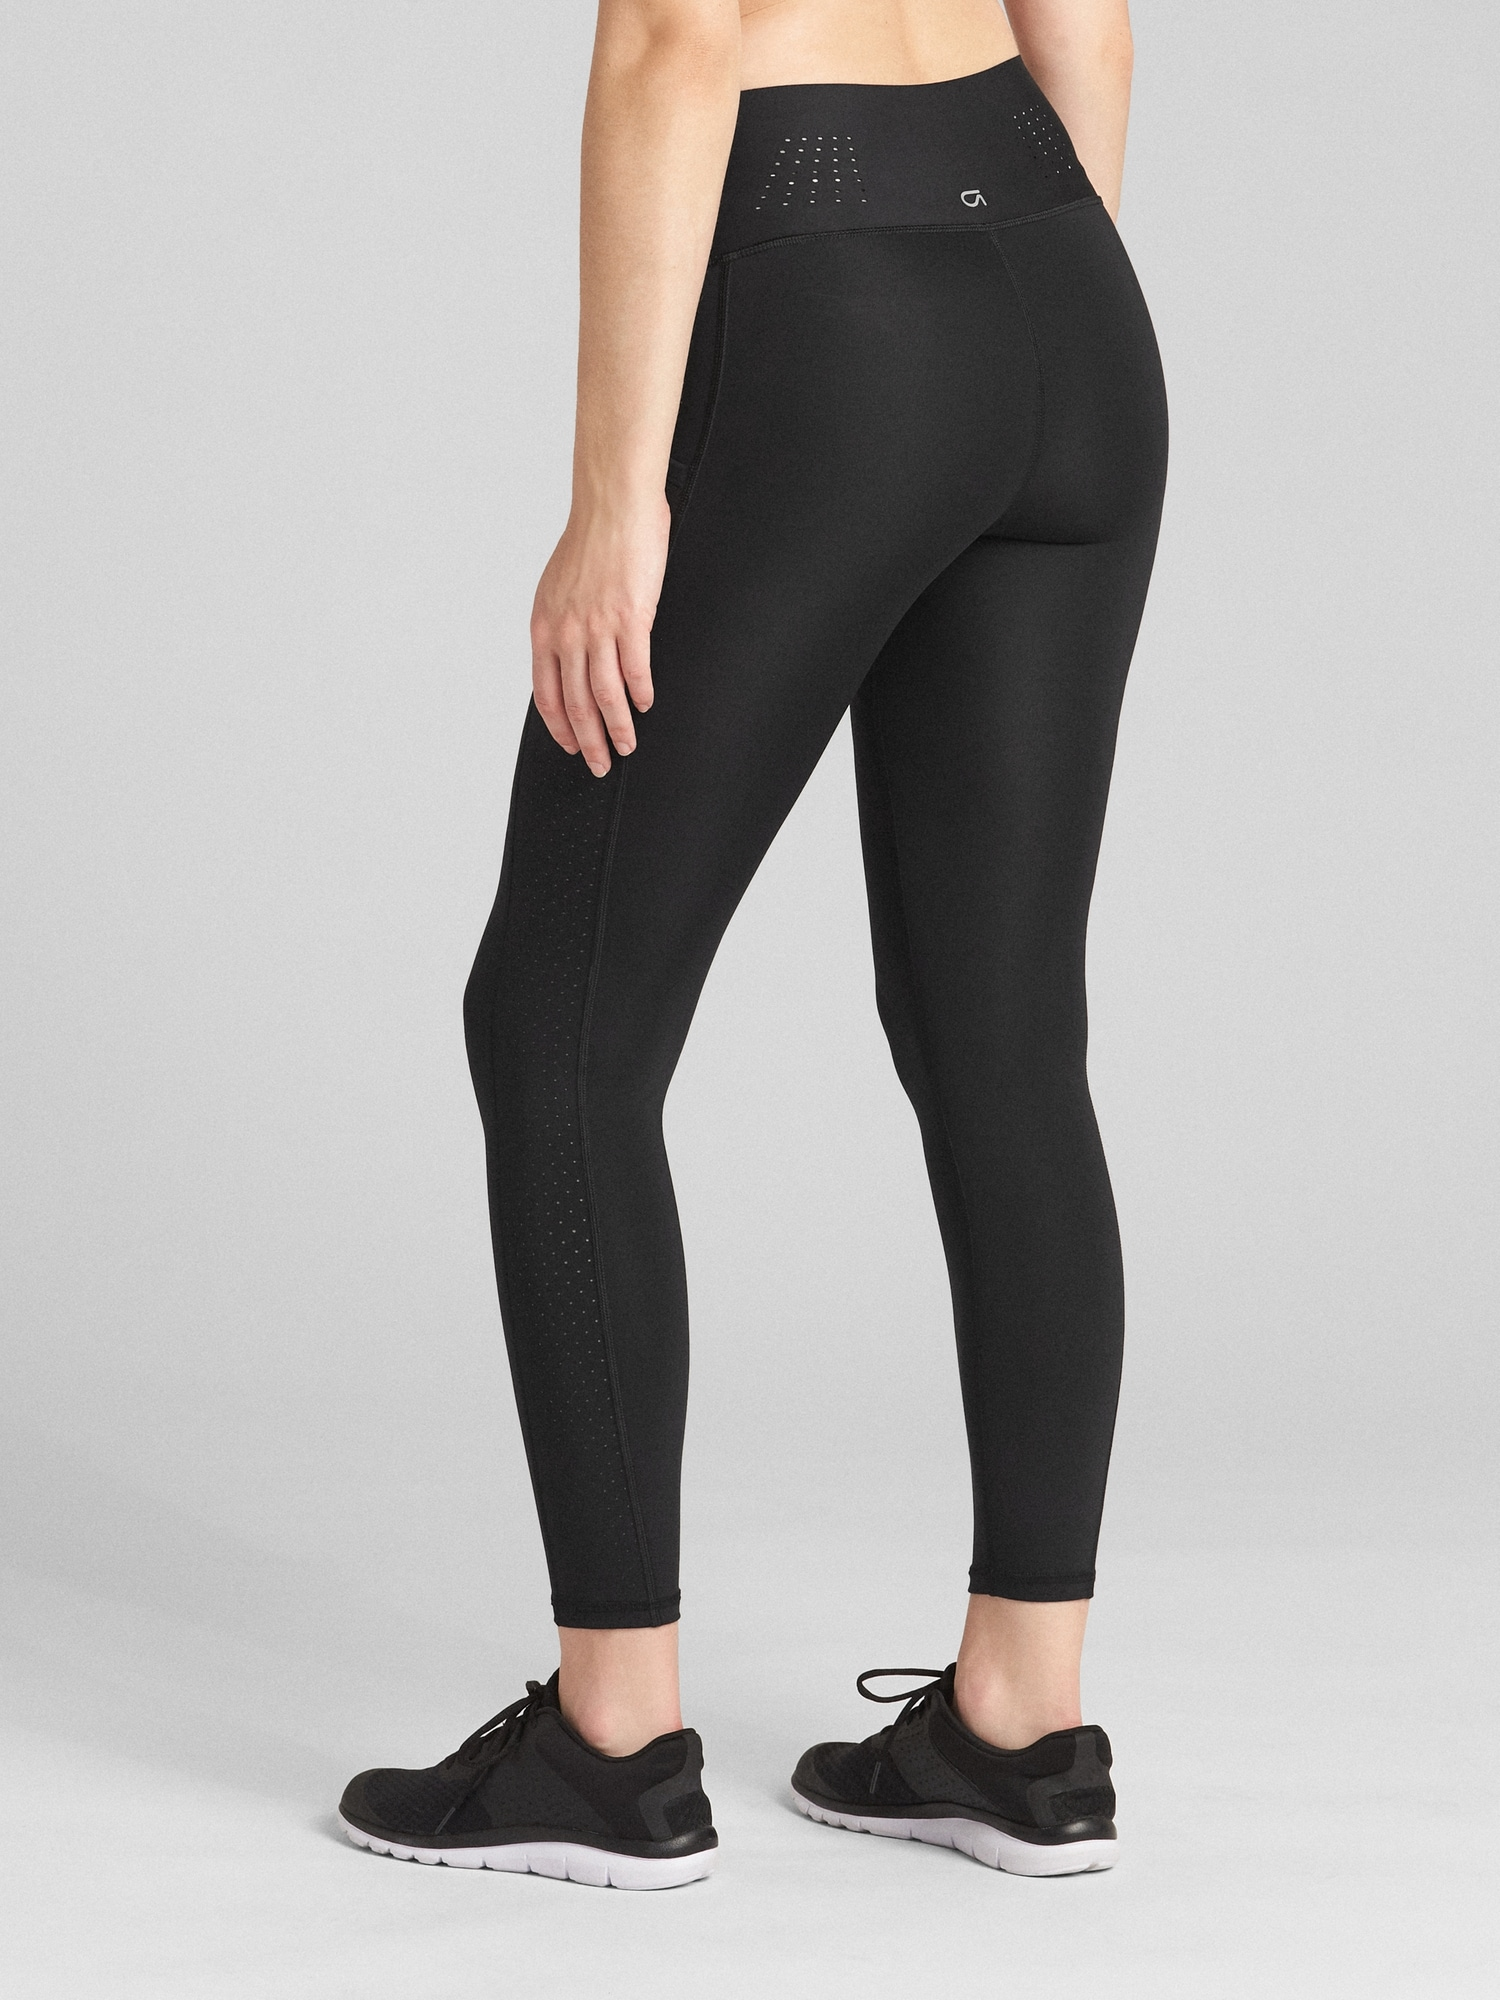 747afcf02d9e6 GapFit High Rise Full Length Leggings in Sculpt Revolution | Gap